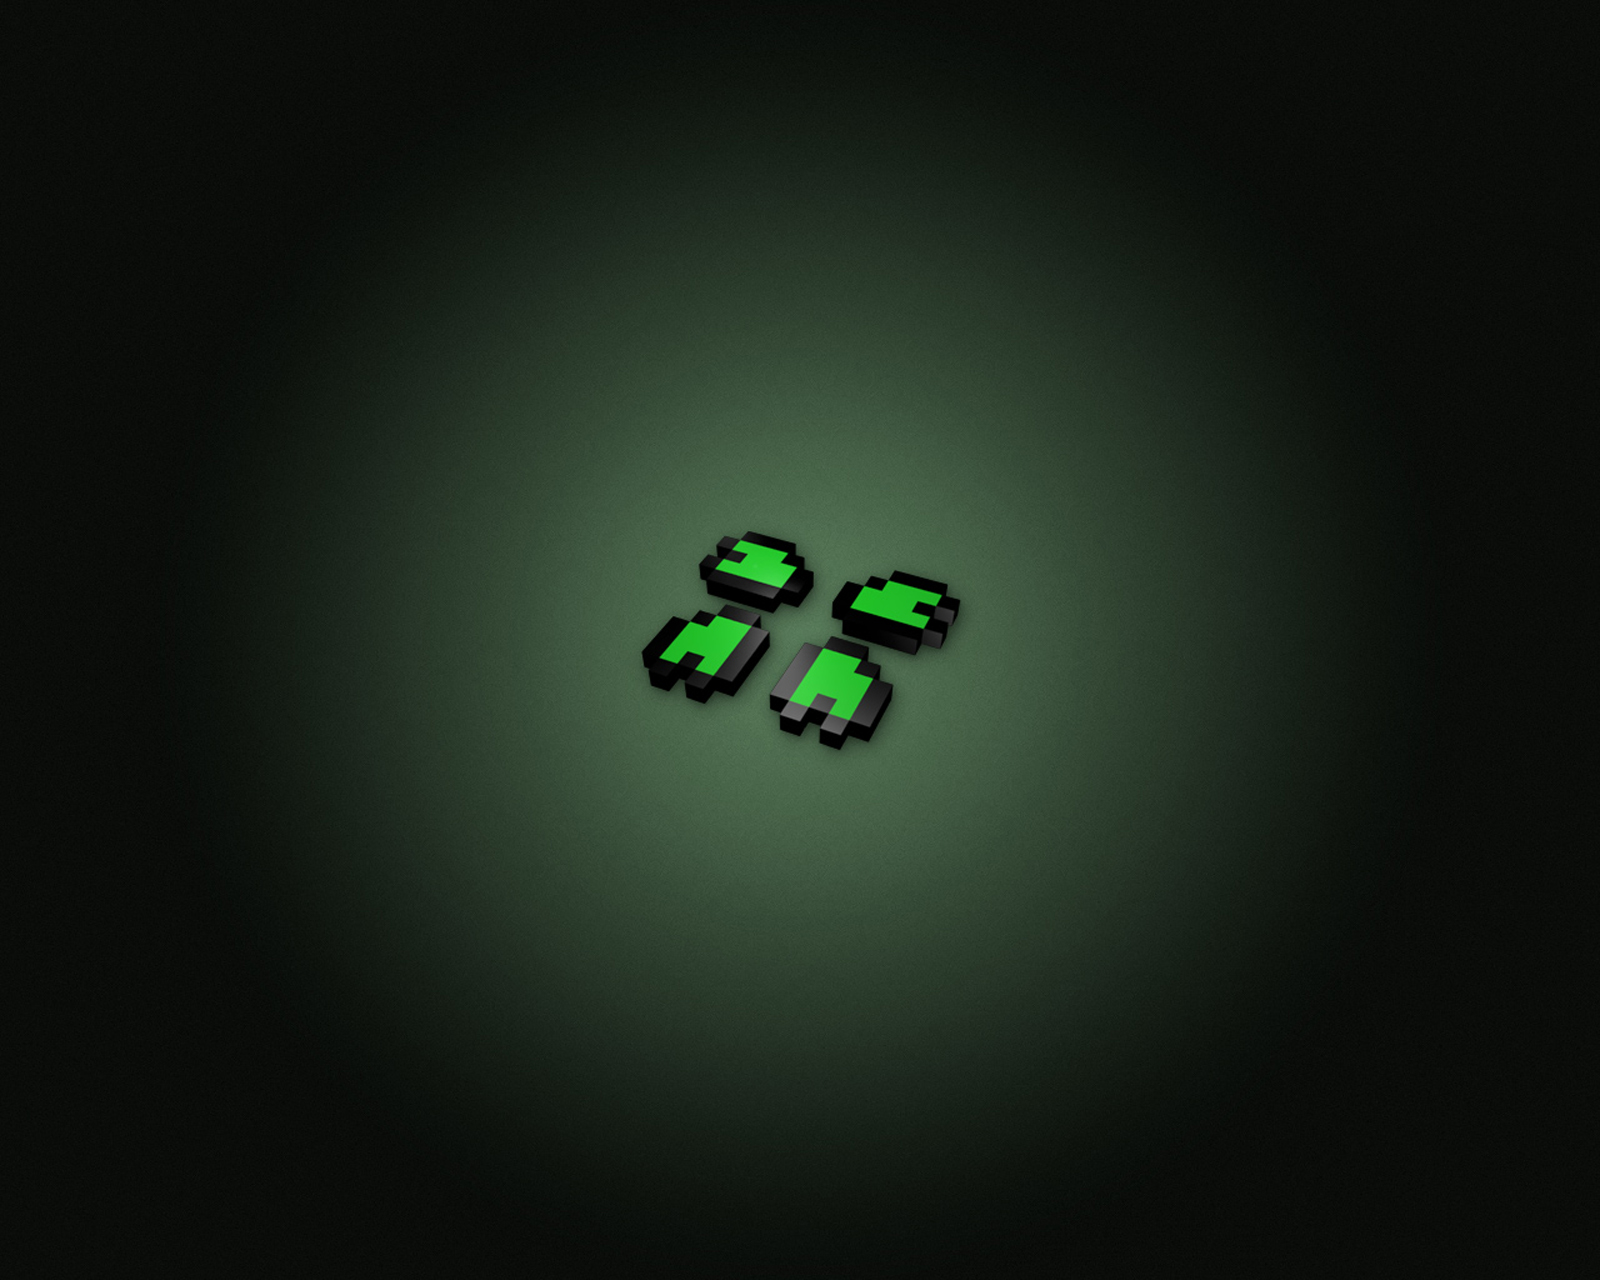 4chan logos hd wallpapers hd wallpapers backgrounds photos pictures image pc - Photo wallpaper ...